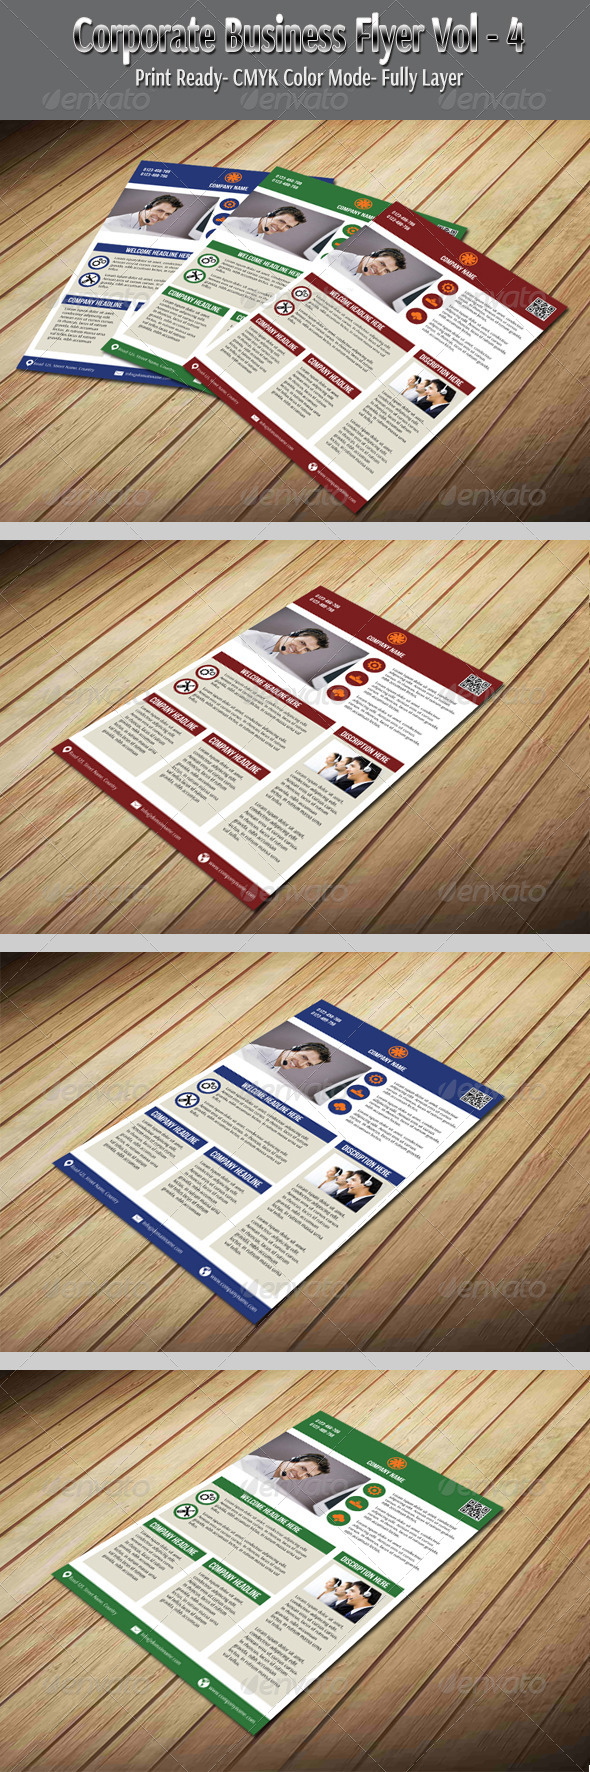 GraphicRiver Corporate Business Flyer Vol-4 6035824